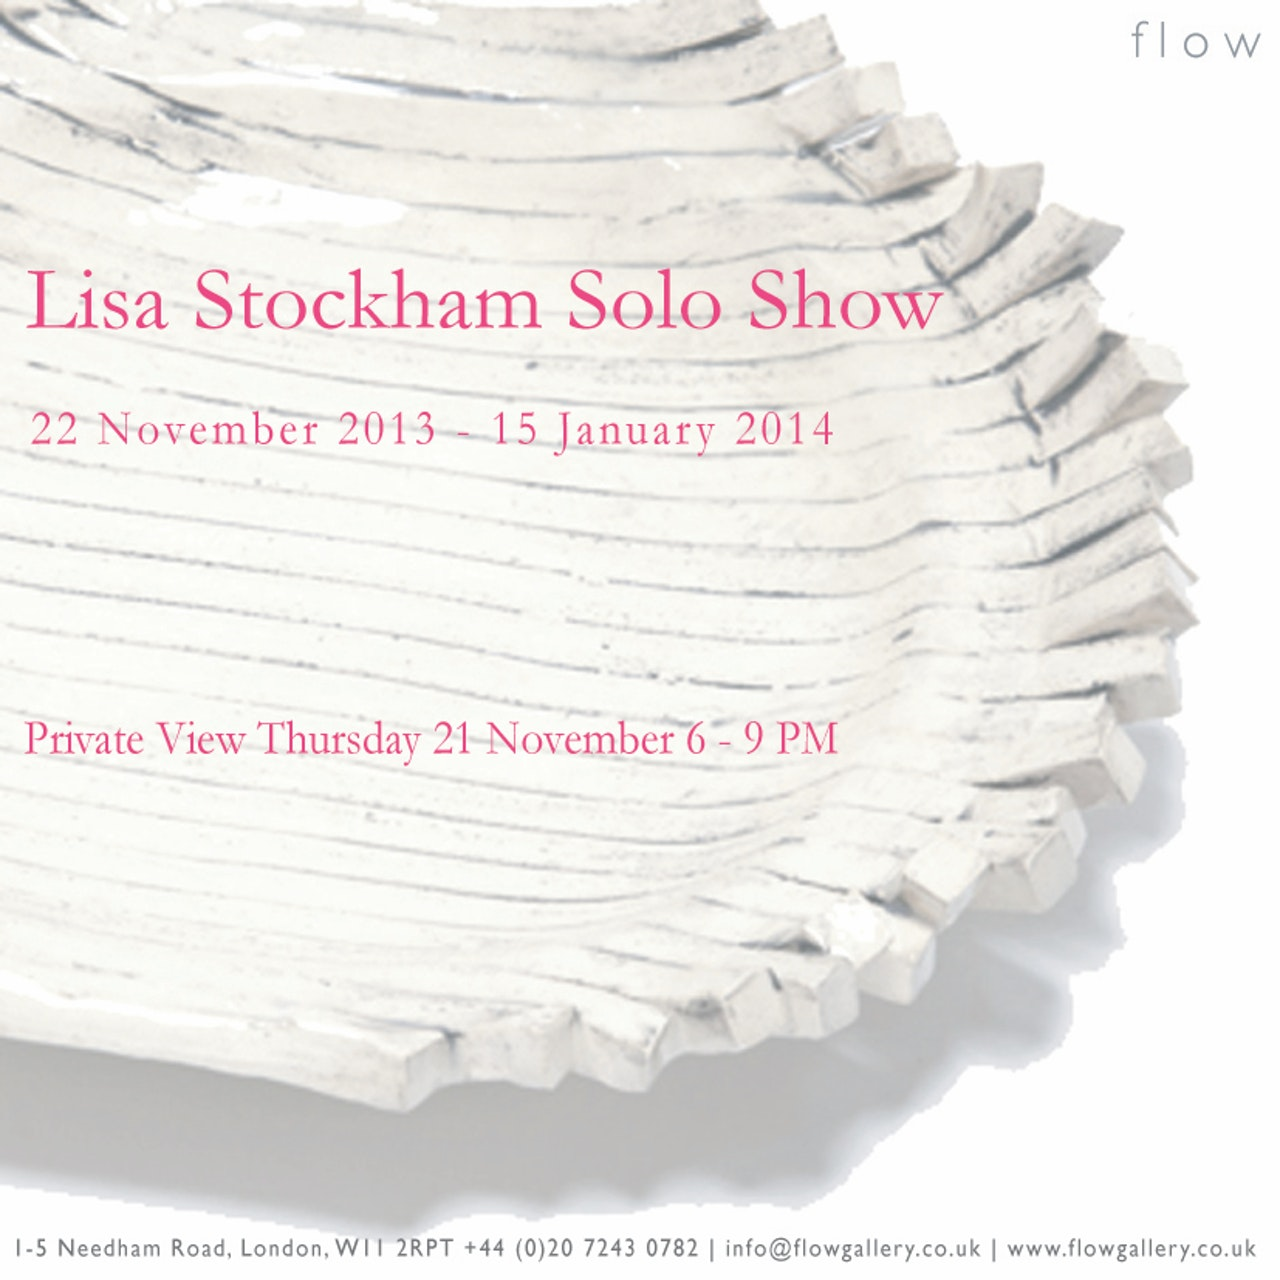 Solo Show at flow   PV 21 November 2013